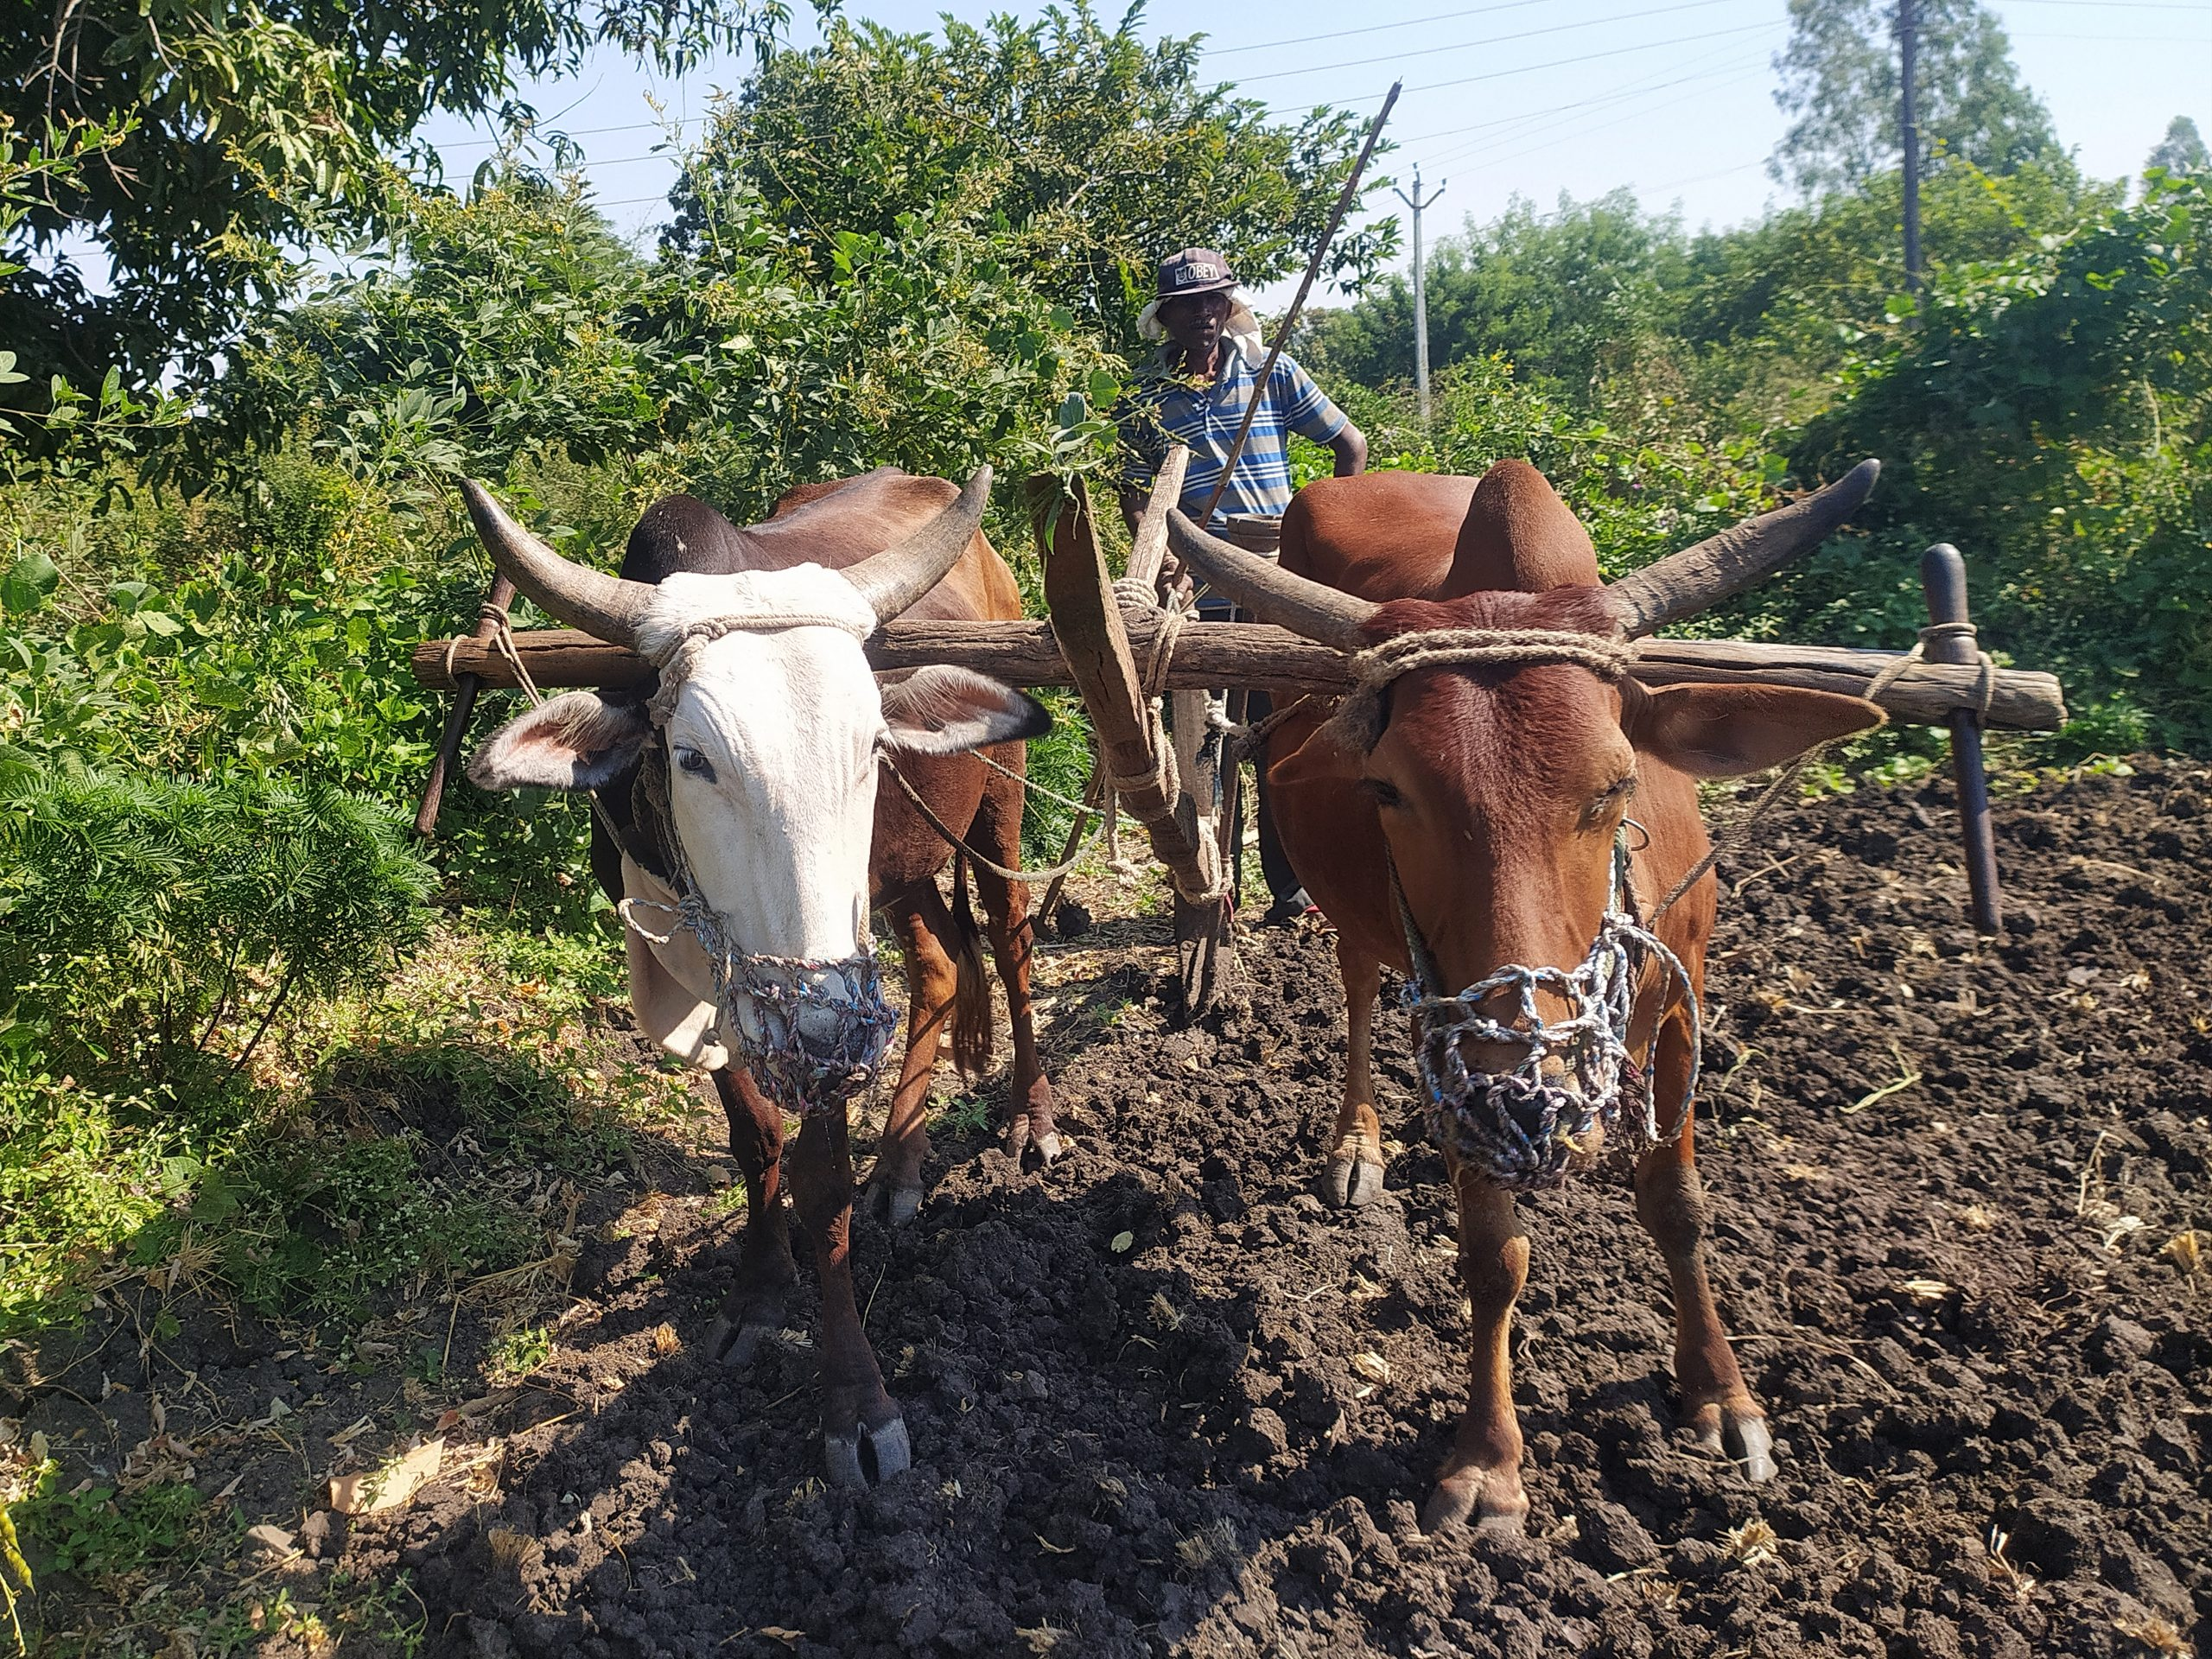 A farmer ploughing with oxen